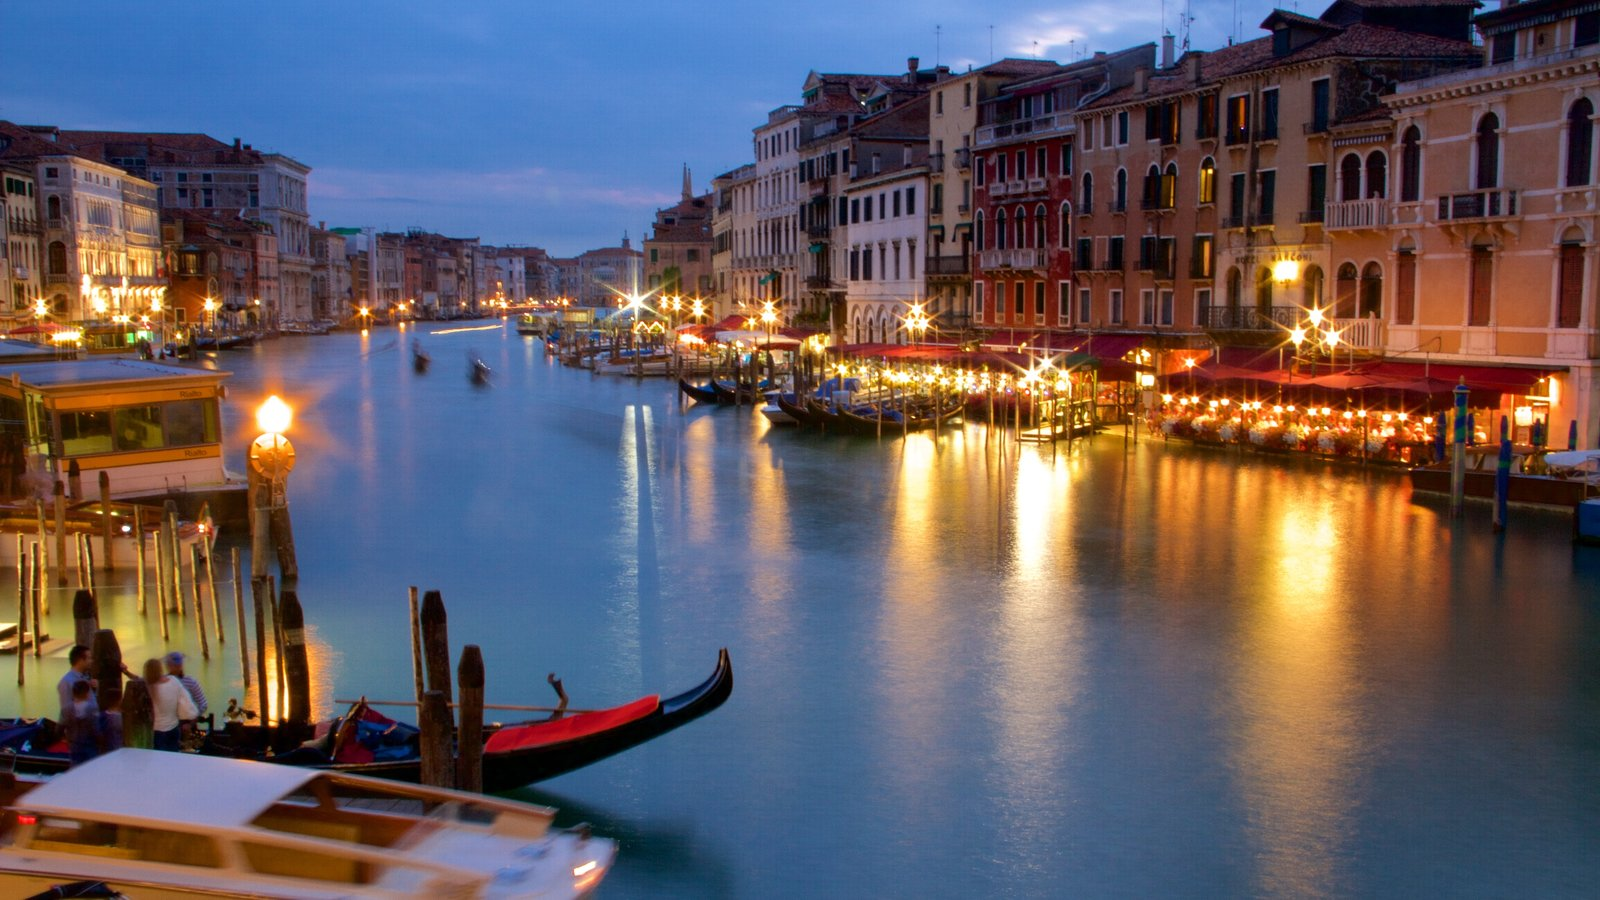 Grand Canal showing heritage architecture, night scenes and a lake or waterhole